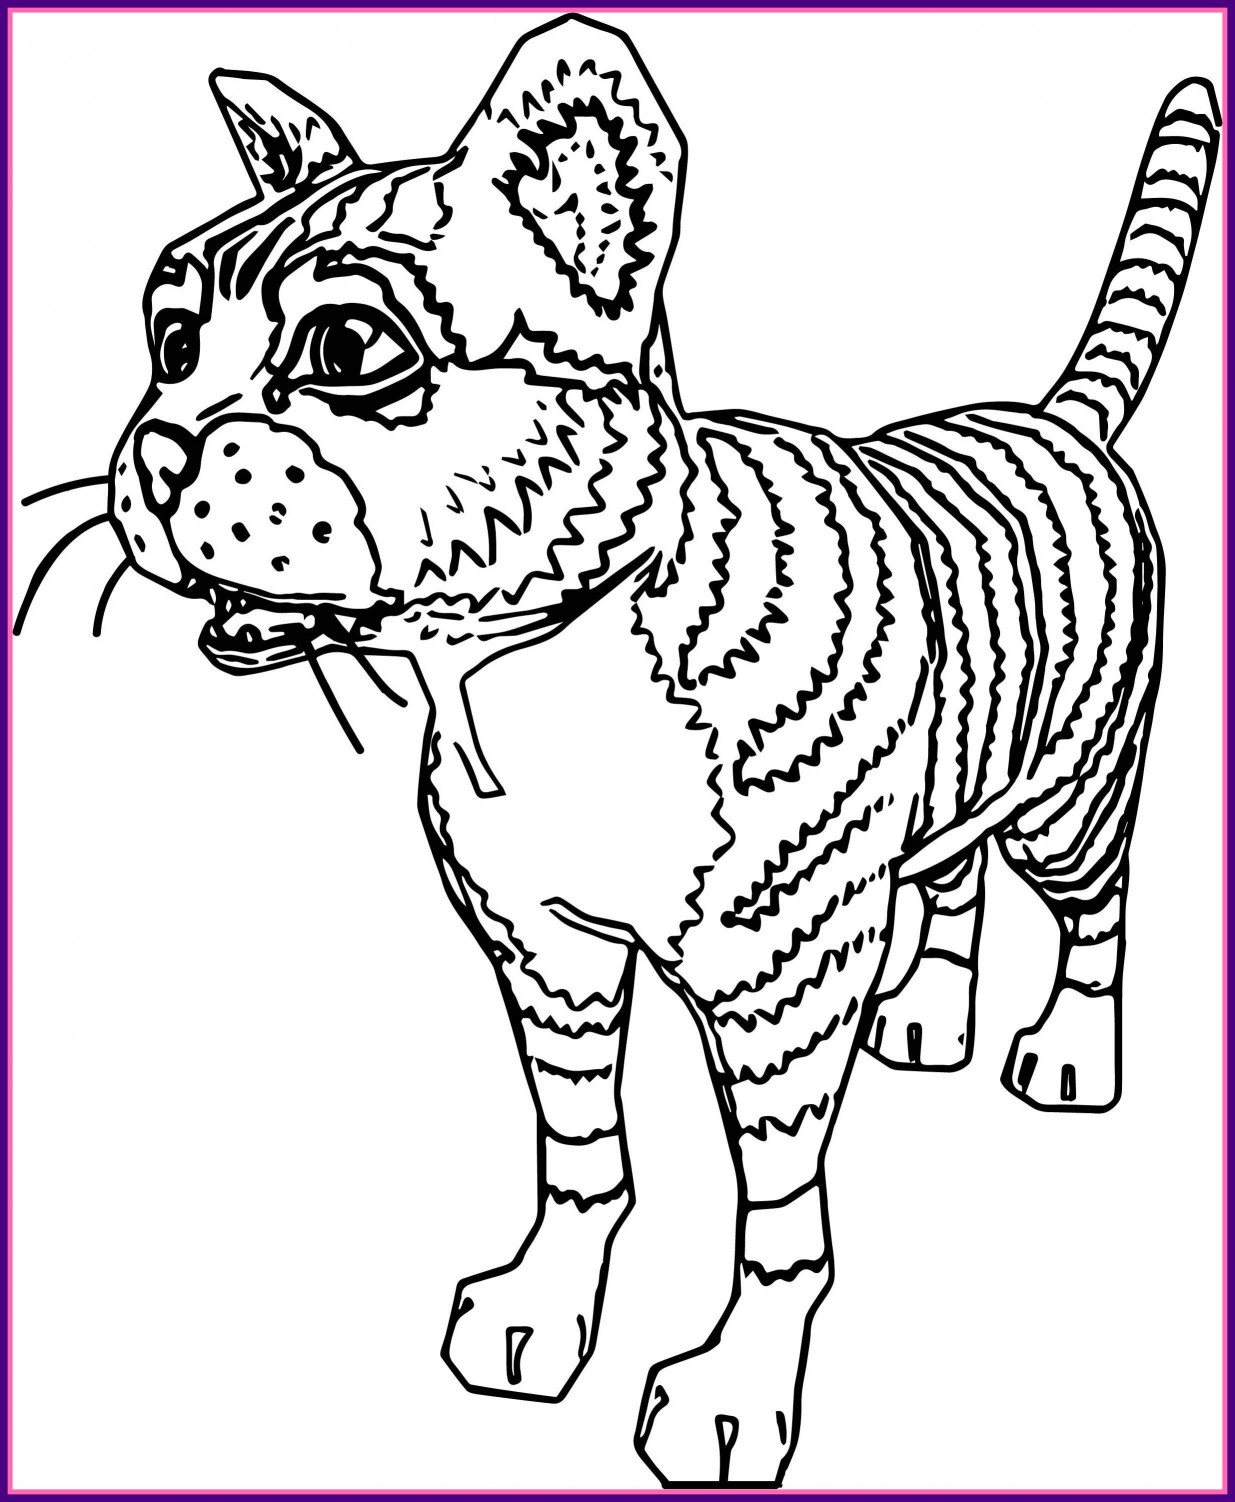 1235x1502 Best Realistic Cat Coloring Page Wecoloringpage Image For Face